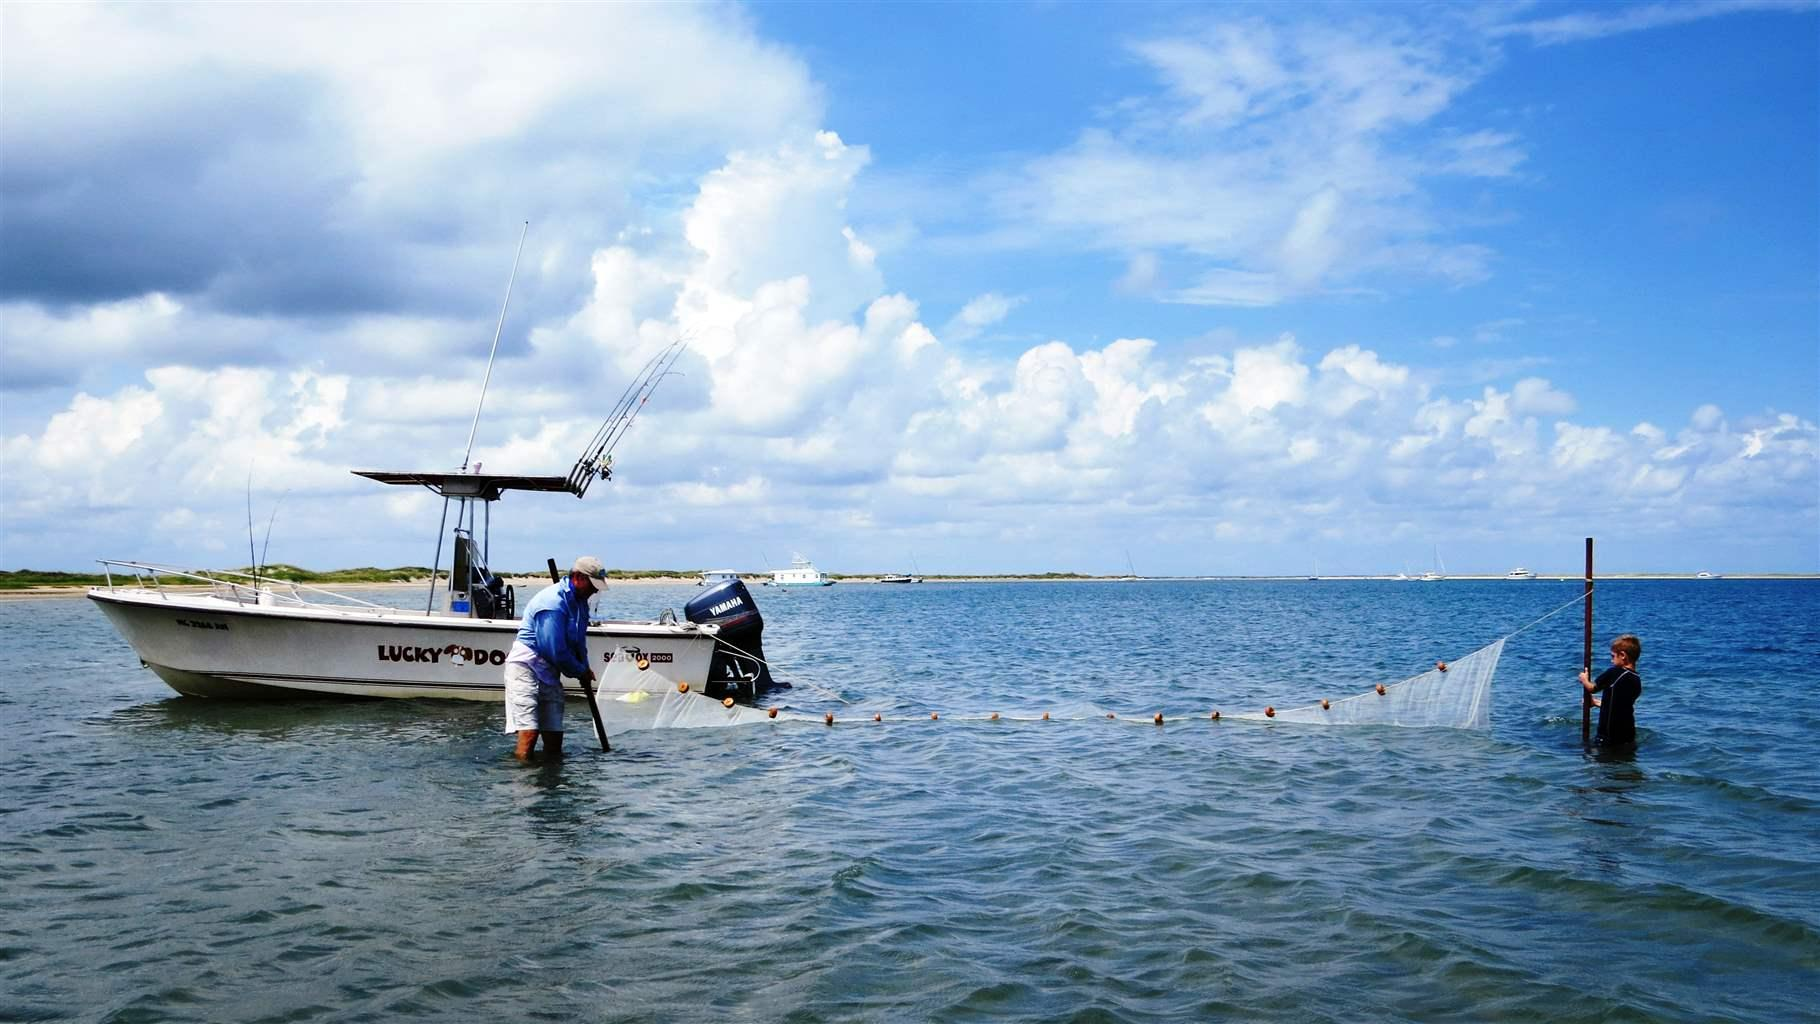 'No One Wants Green Water or Fish Dying on the Beaches' - The Pew Charitable Trusts